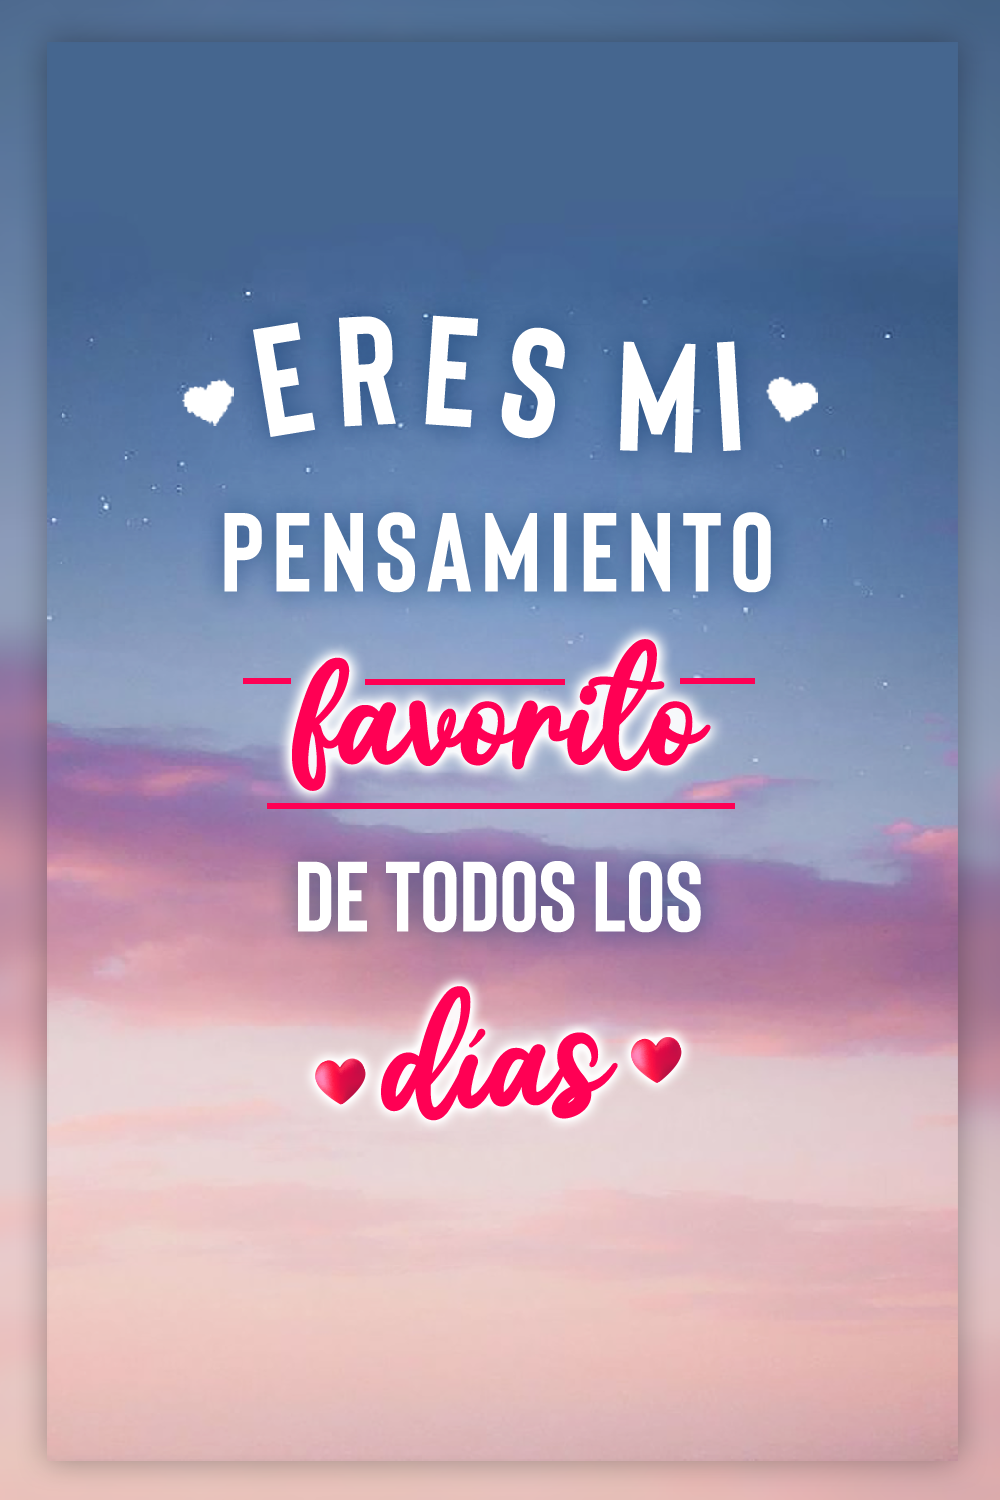 27 Frases de amor que puedes dedicar en Whatsapp Phrases that you can put in your WhatsApp status with a